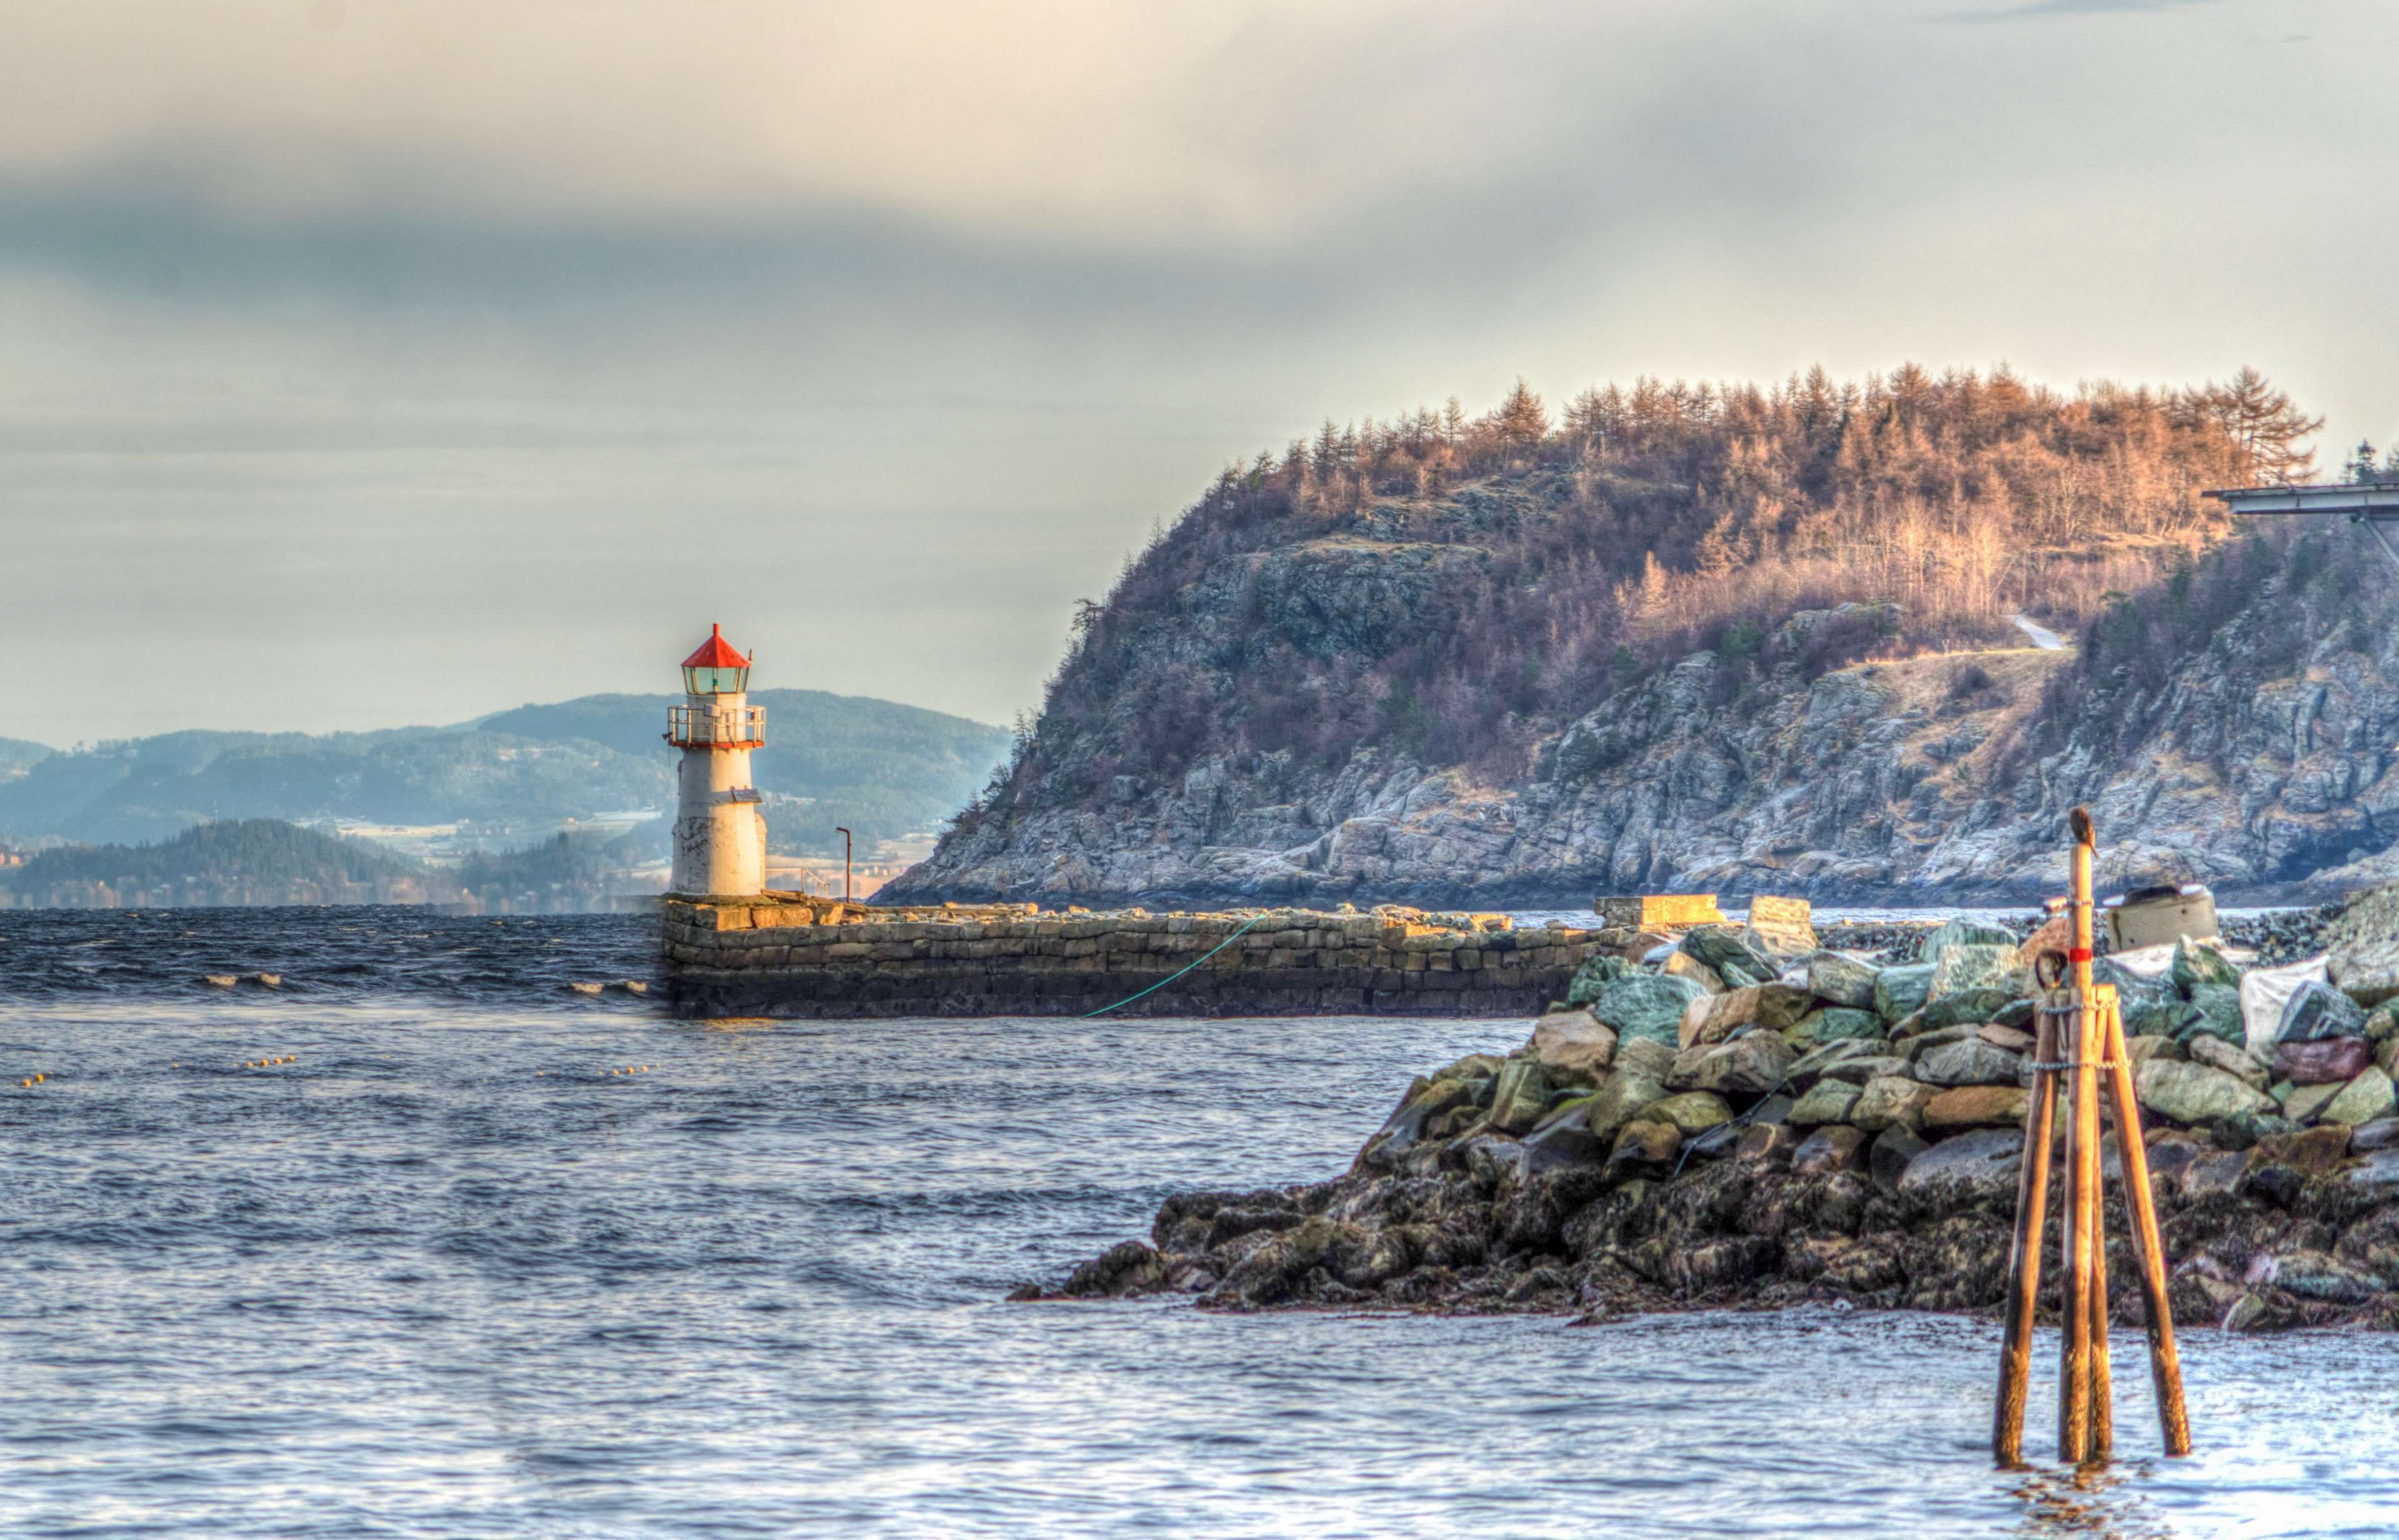 #cliff #europe #fjord #landscape #lighthouse #nature #norway coast #outdoors #rocky #scandinavia #scenery #scenic #sea #sky #travel #water